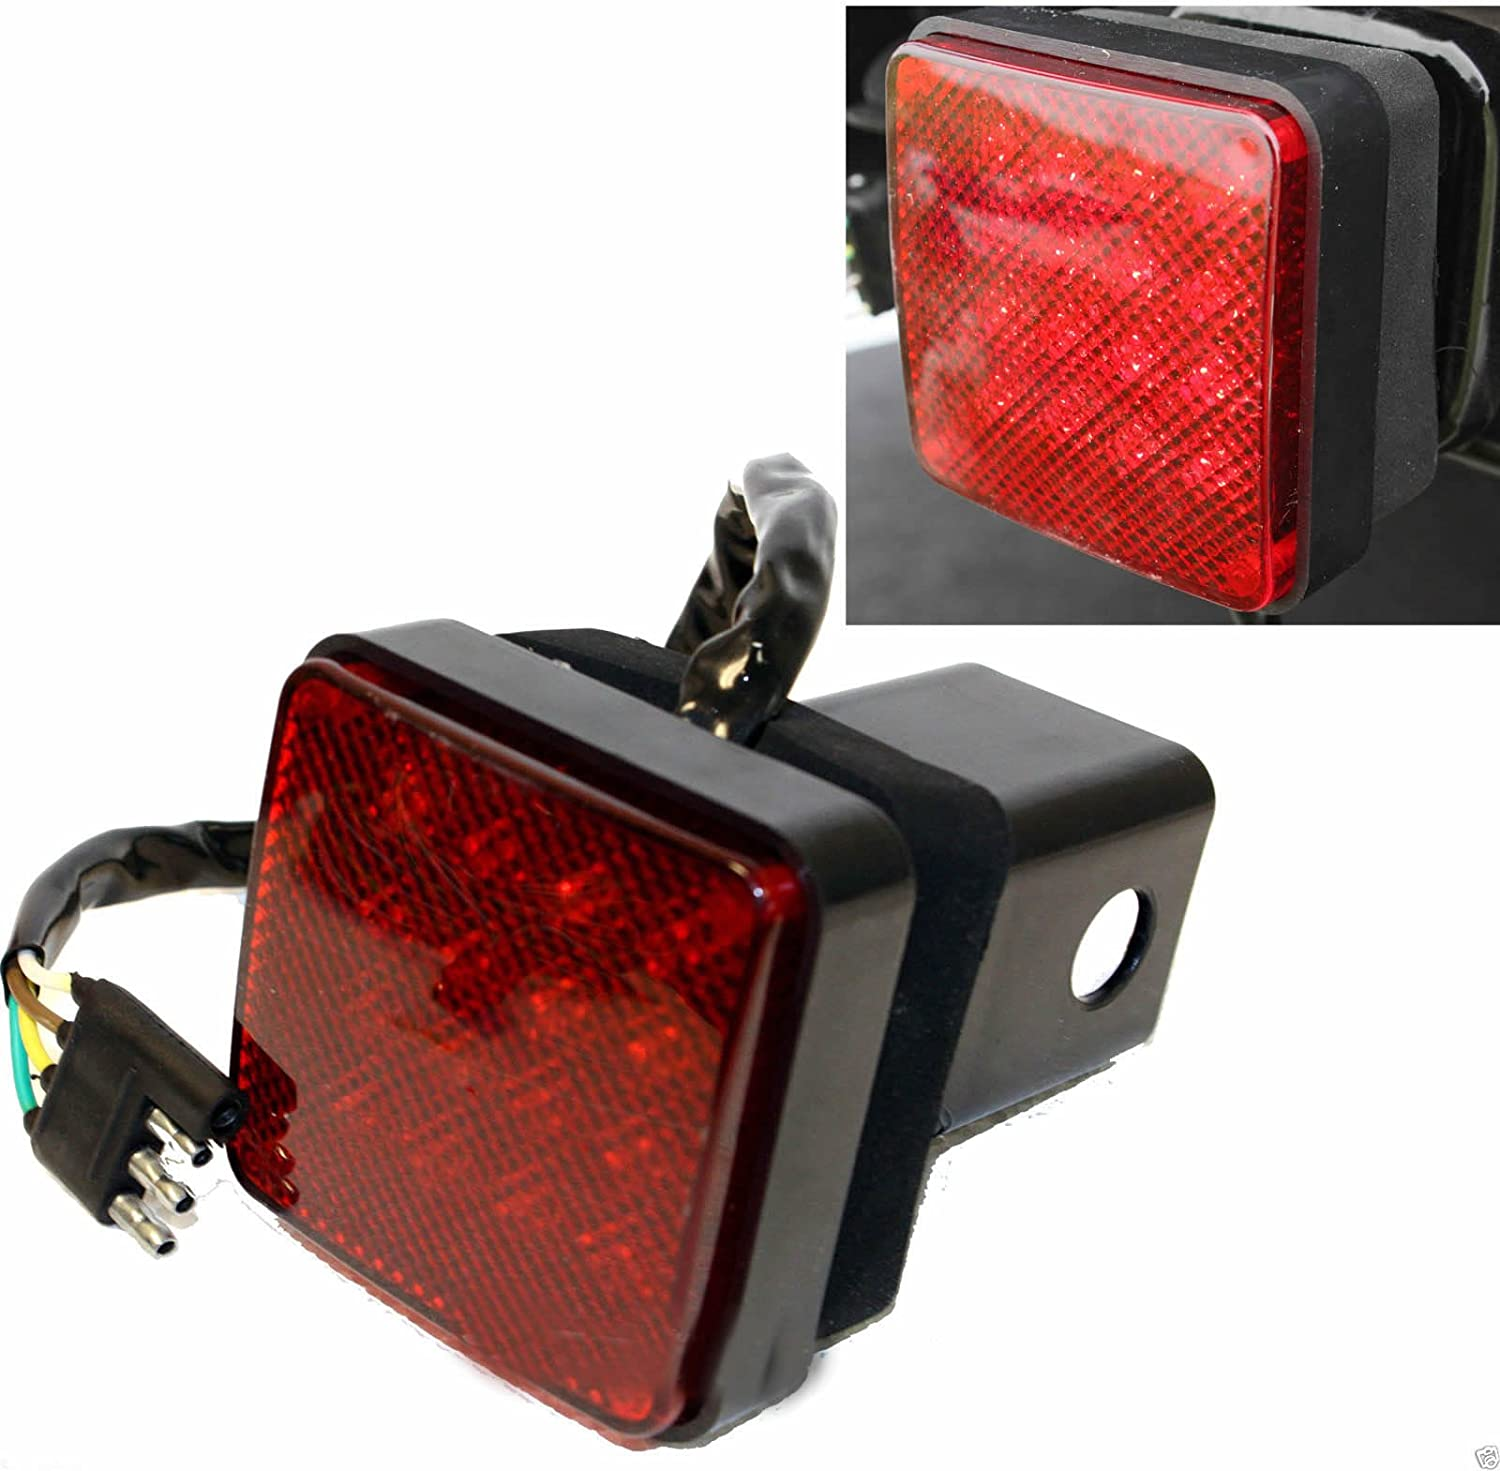 2/'/' Trailer Truck Hitch Towing Receiver Cover 15 LED Brake Light Cover W//